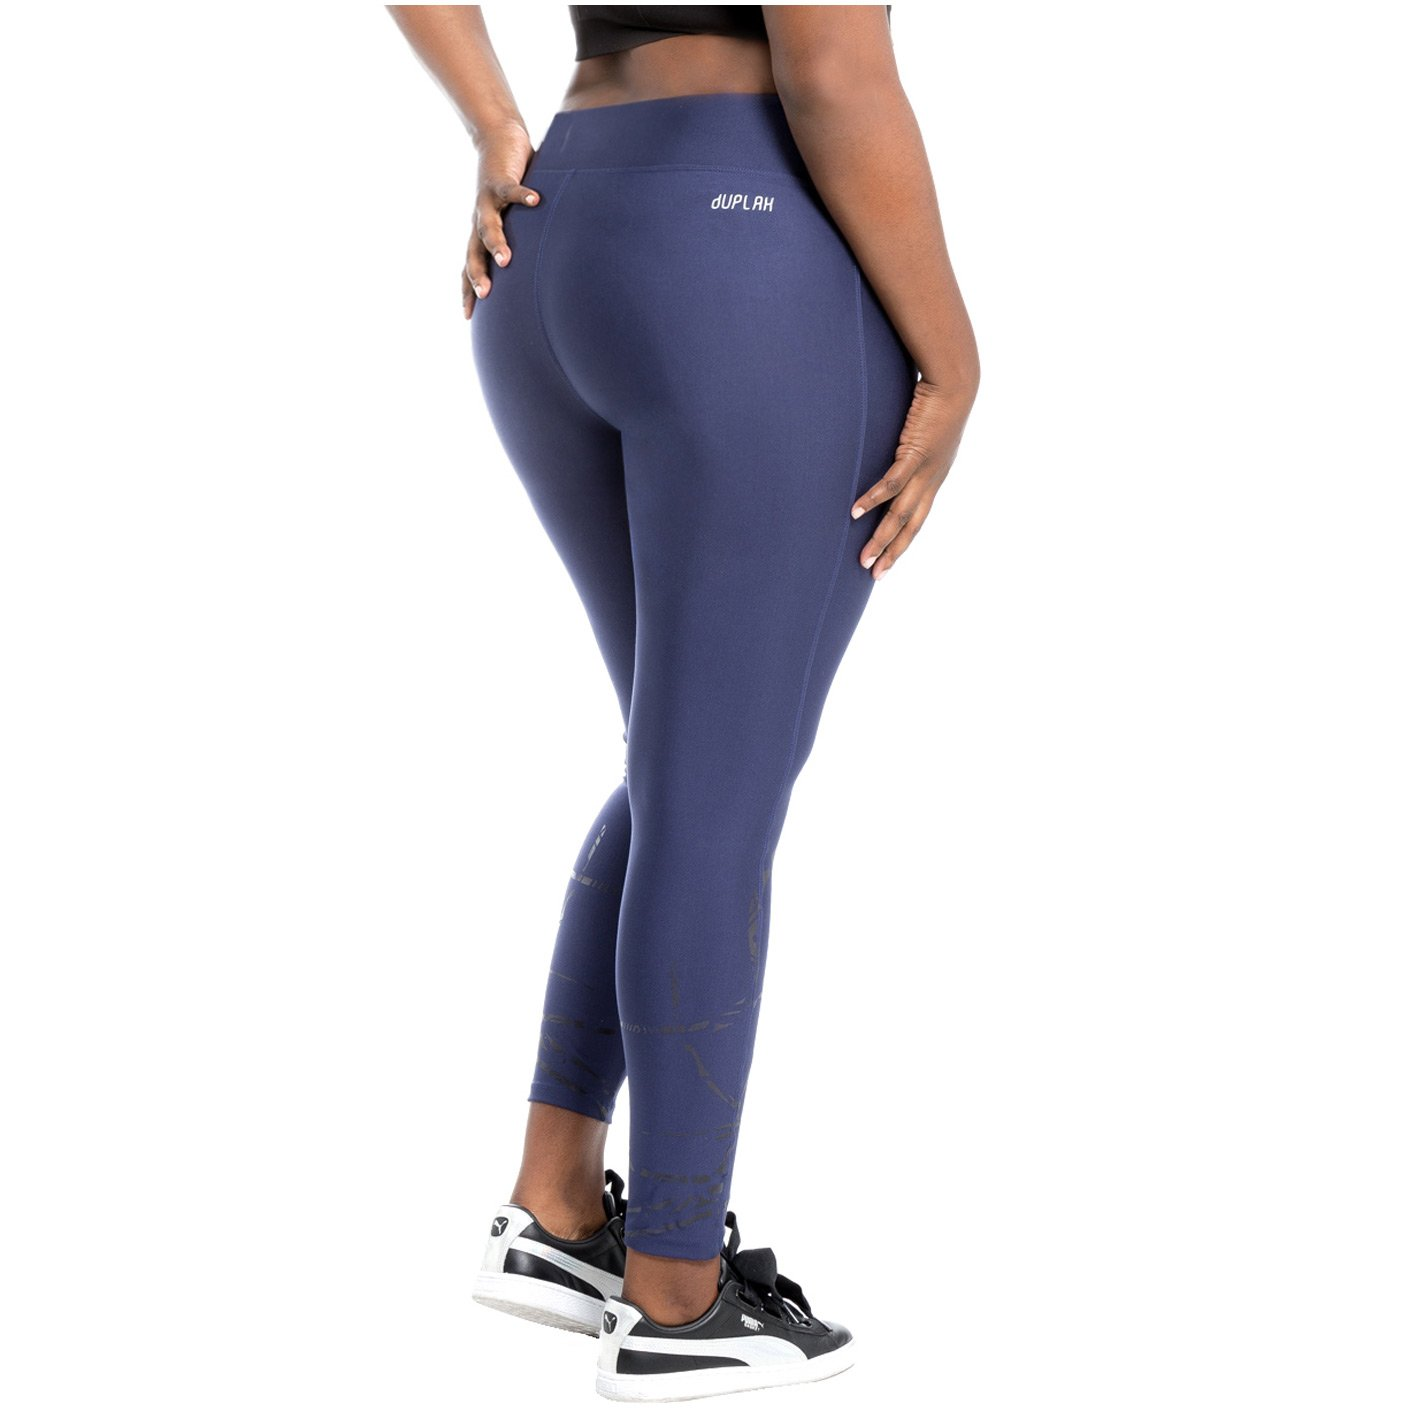 1cee8040e4b9d Duplah Womens Fashion Plus Size Leggings Workout Pants Comfortable  Sportswear Yoga Gym Crossfit Activewear Ropa Deportiva Colombiana Mujer  Blue XL: ...